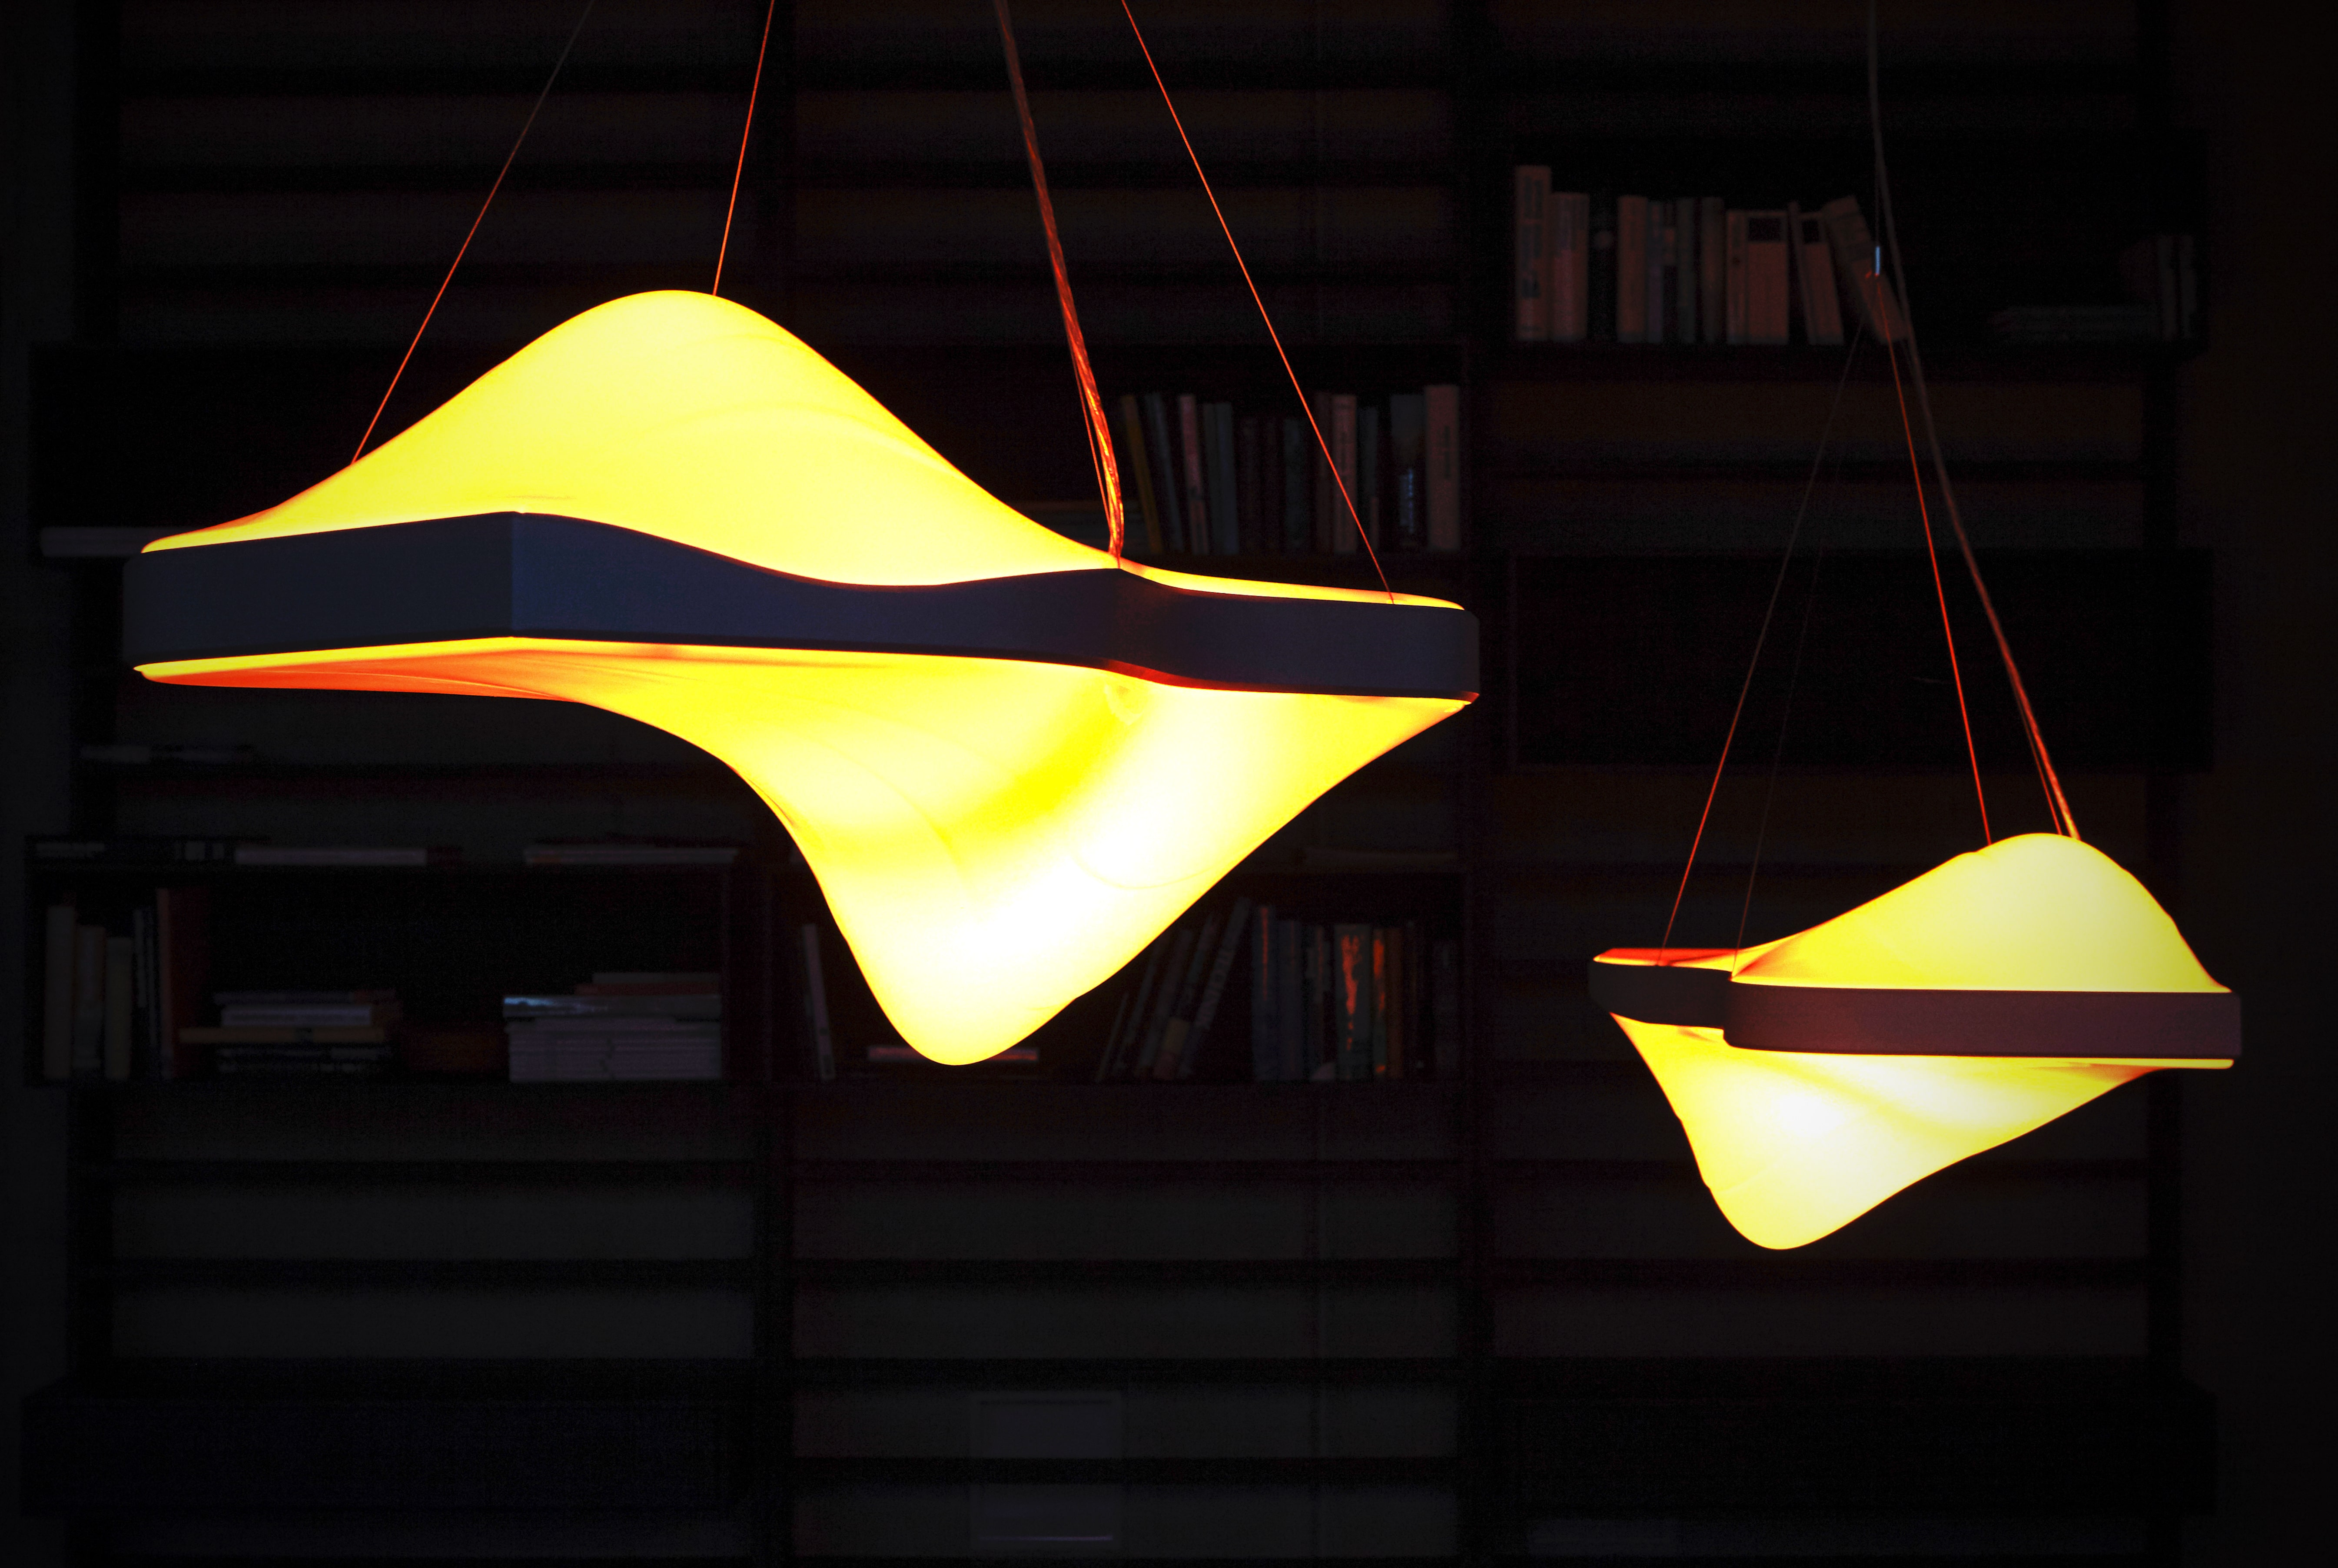 VIBE biorhythmic lighting by KITEO